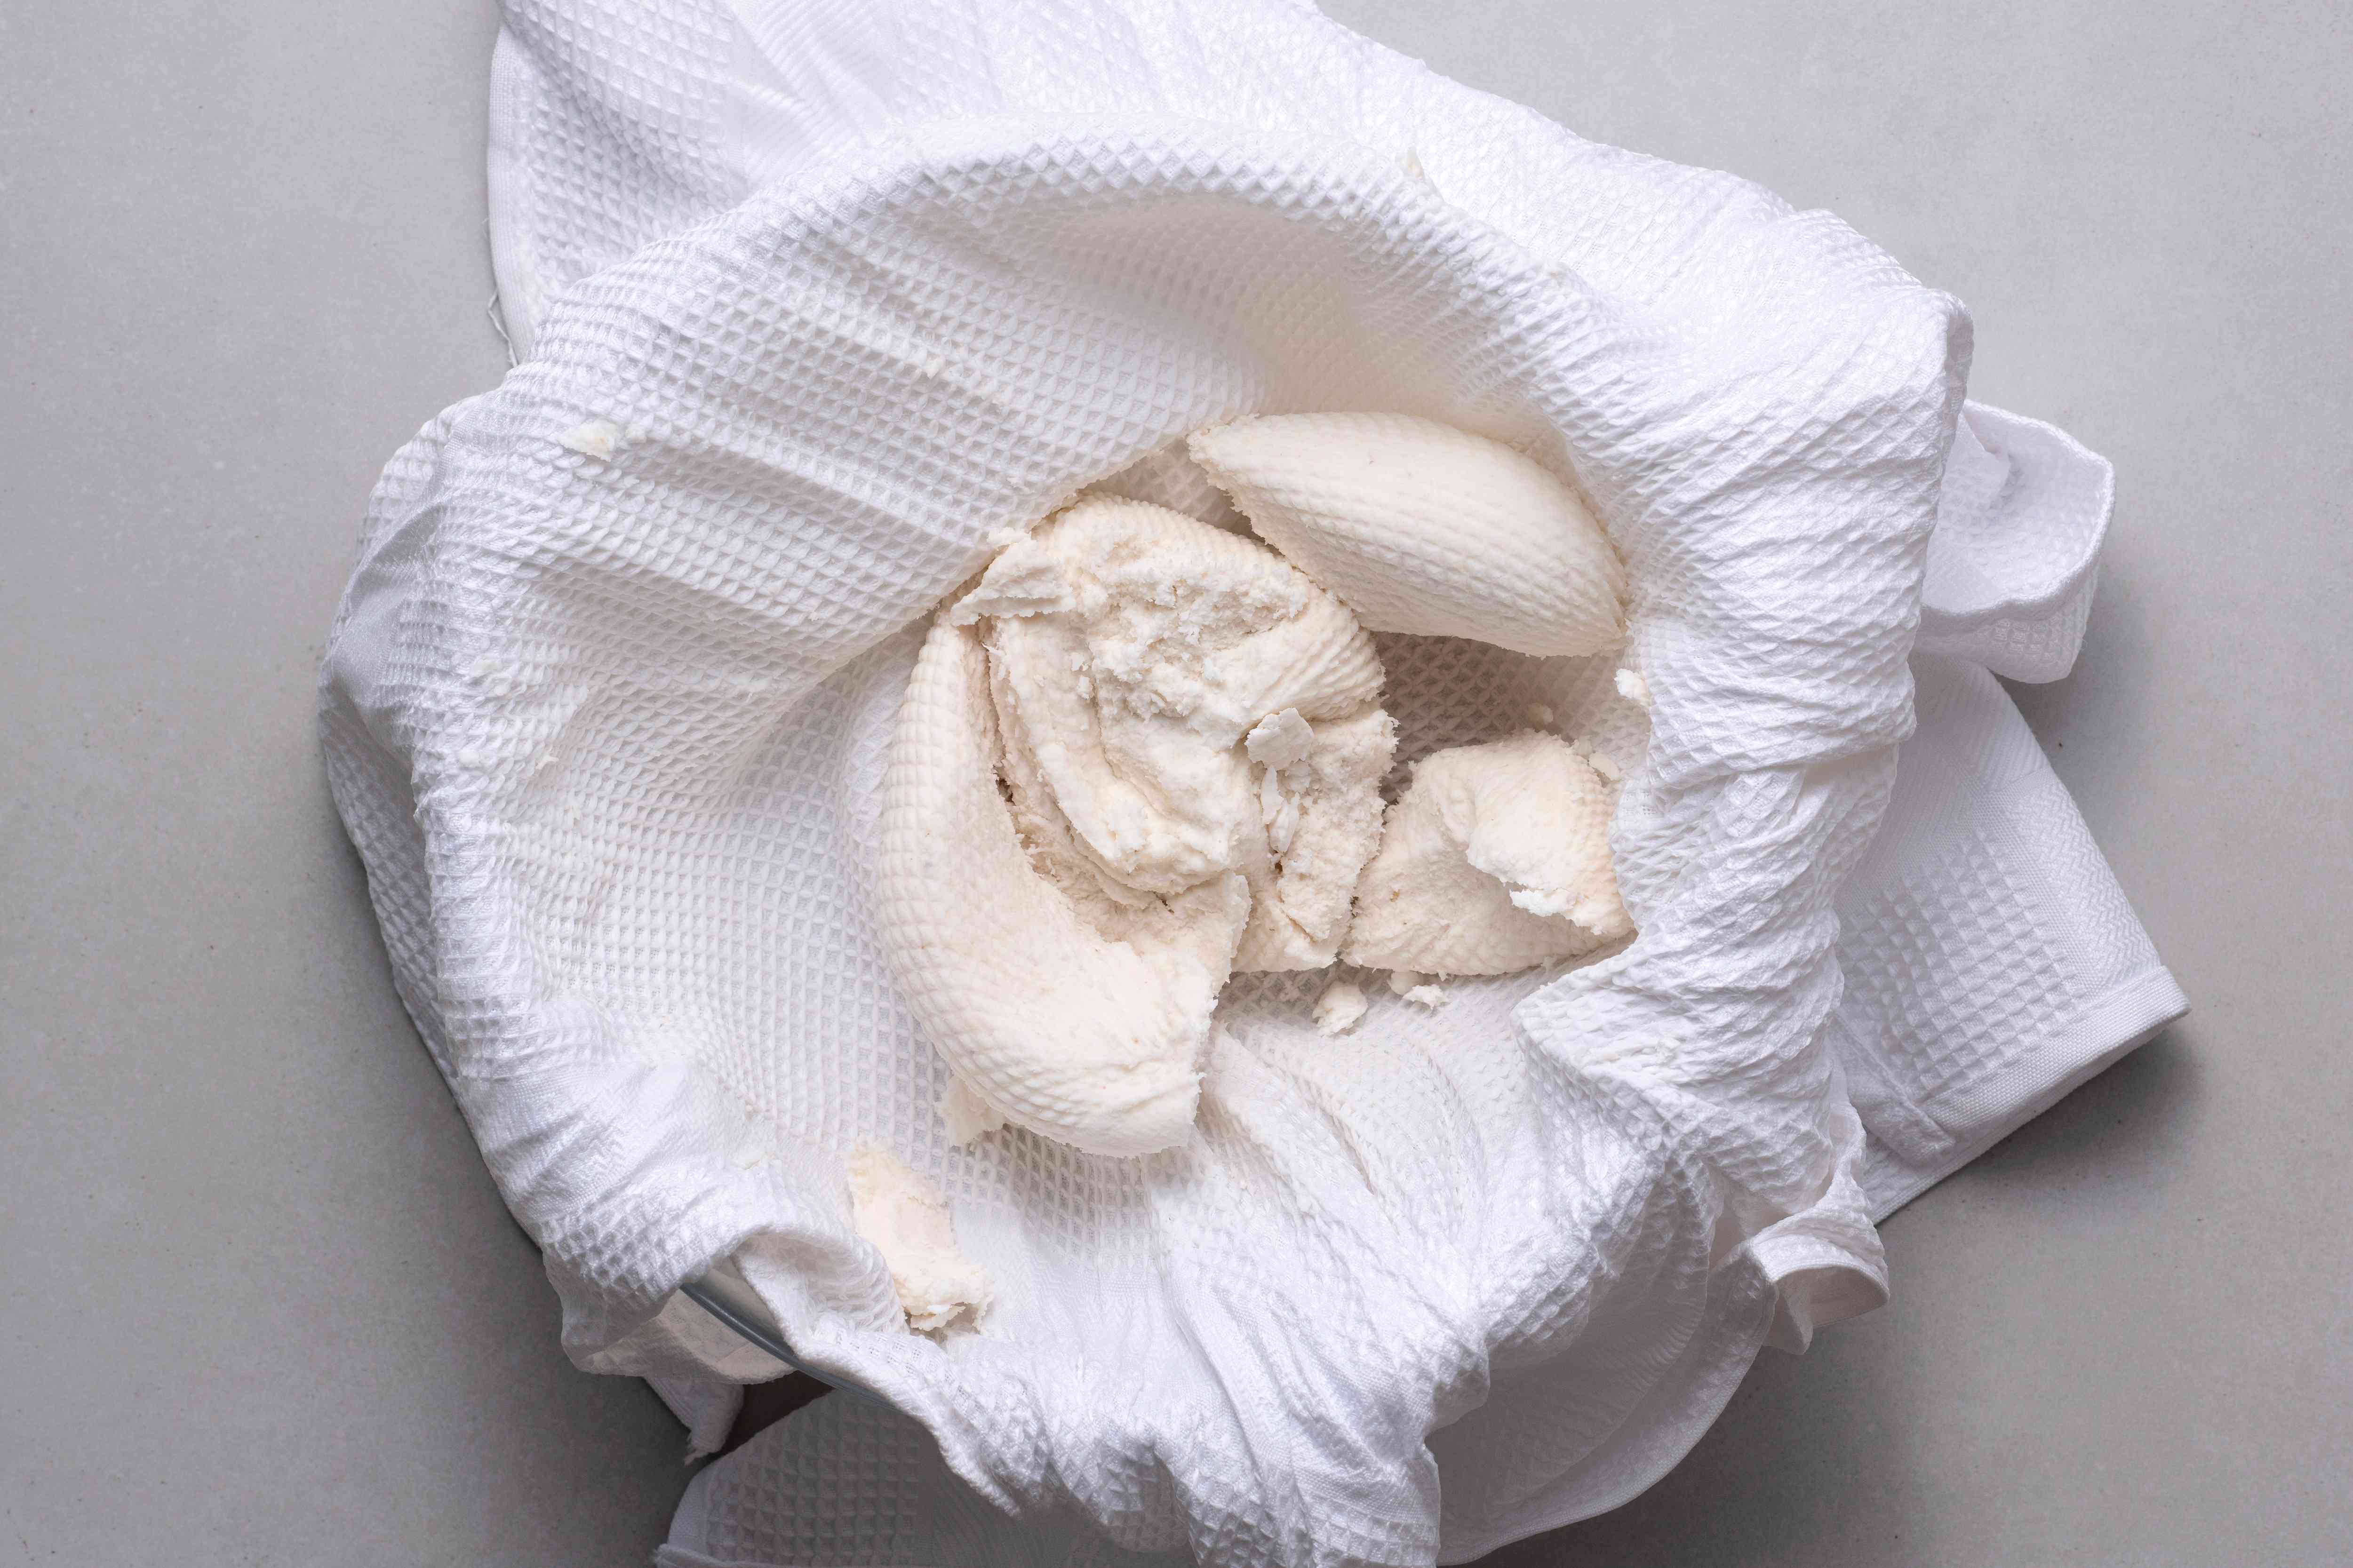 Using cheesecloth or a clean cotton towel, squeeze the grated cassava